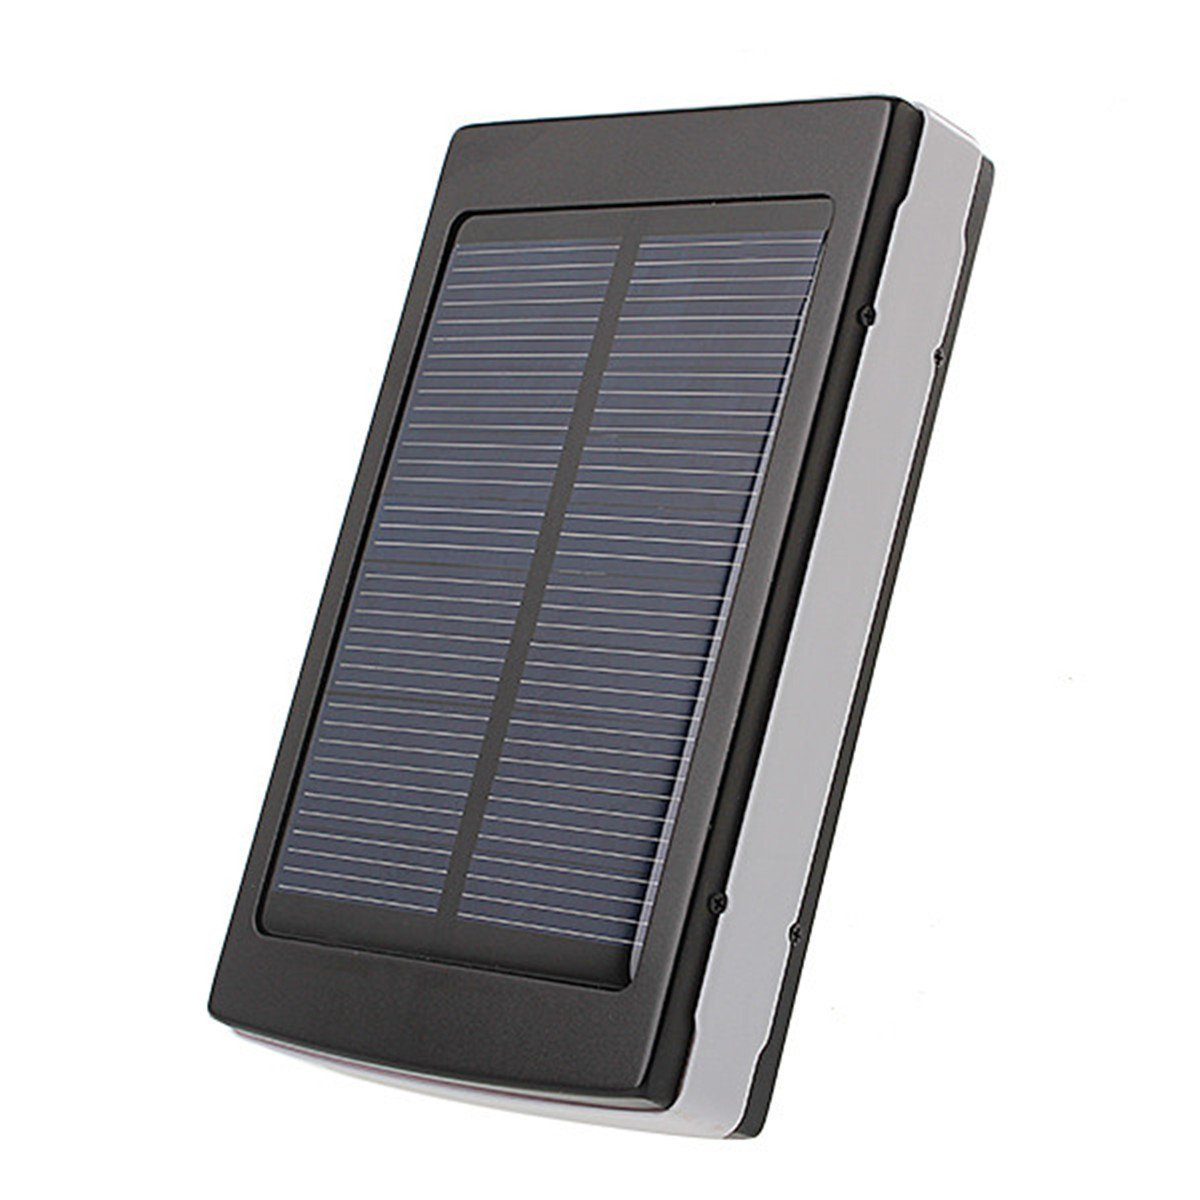 30000mAh Dual USB Portable Solar Battery Charger Power Bank For Cell Phone Samsung Htc Ipad